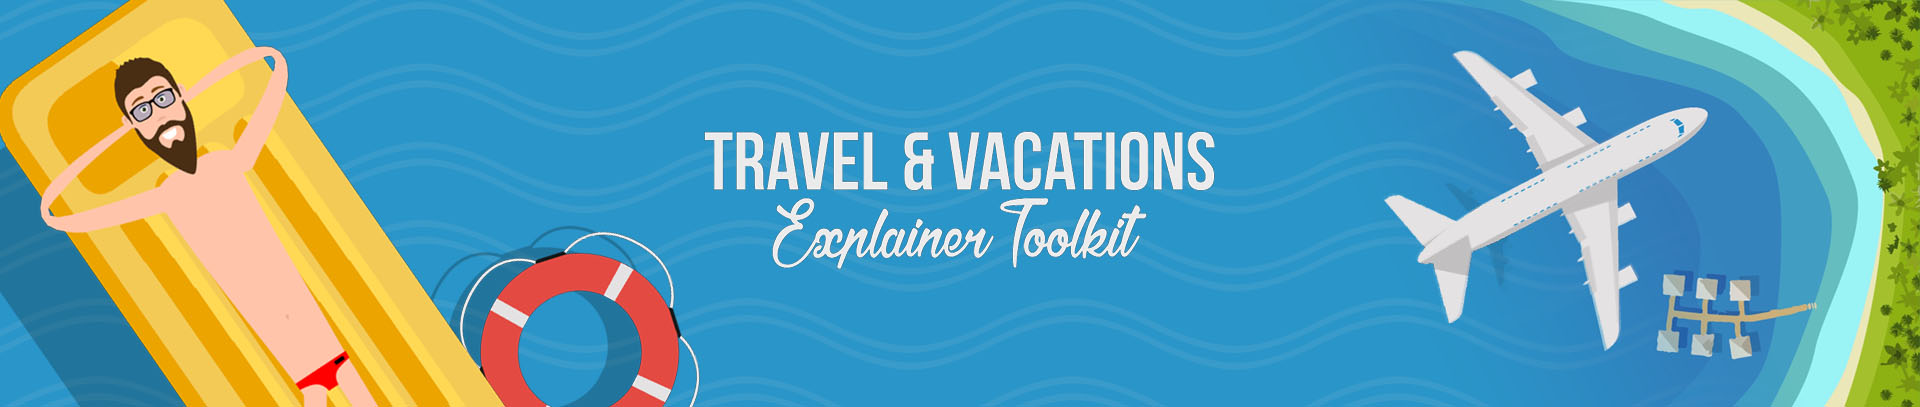 Travel & Vacations Explainer Toolkit (slide)